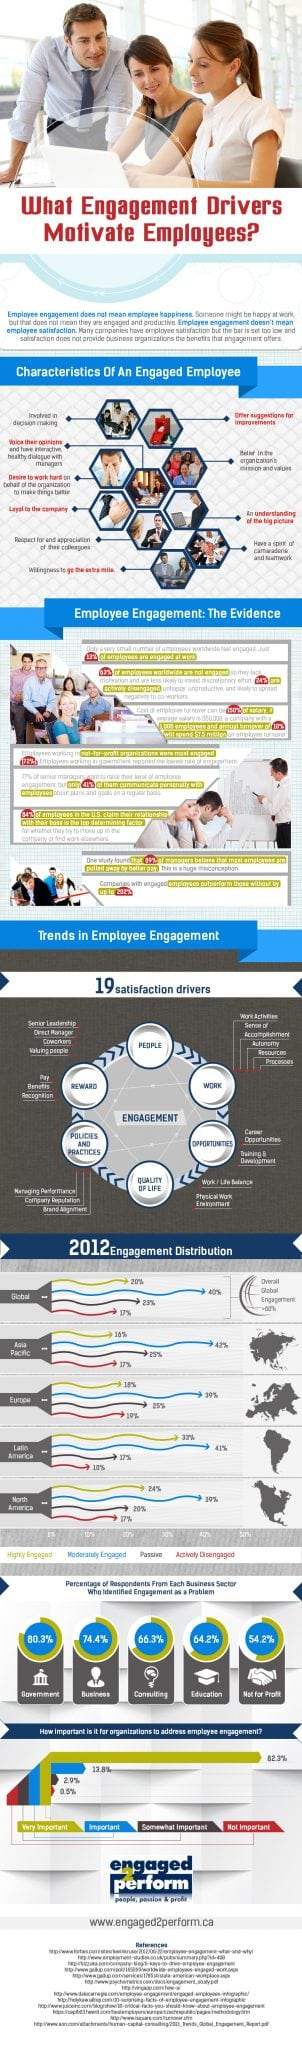 Photo of What Engagement Drivers Motivate Employees? [INFOGRAPHIC]